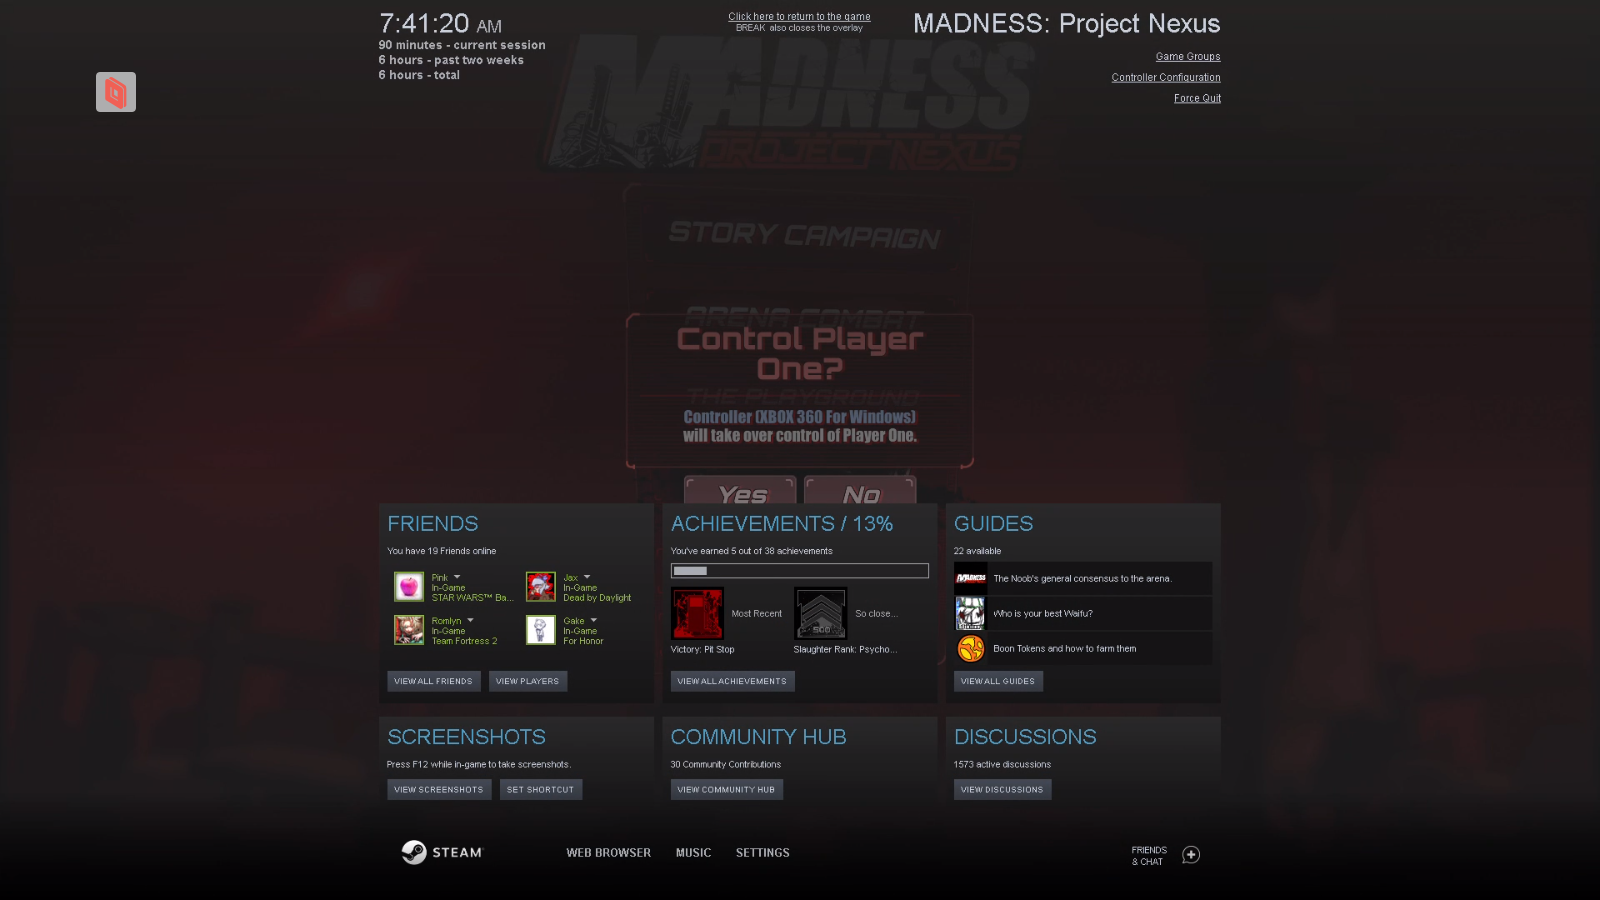 MADNESS: Project Nexus - Controller/Multiplayer Fix Guide - Controller Configuration - CDC3EF9